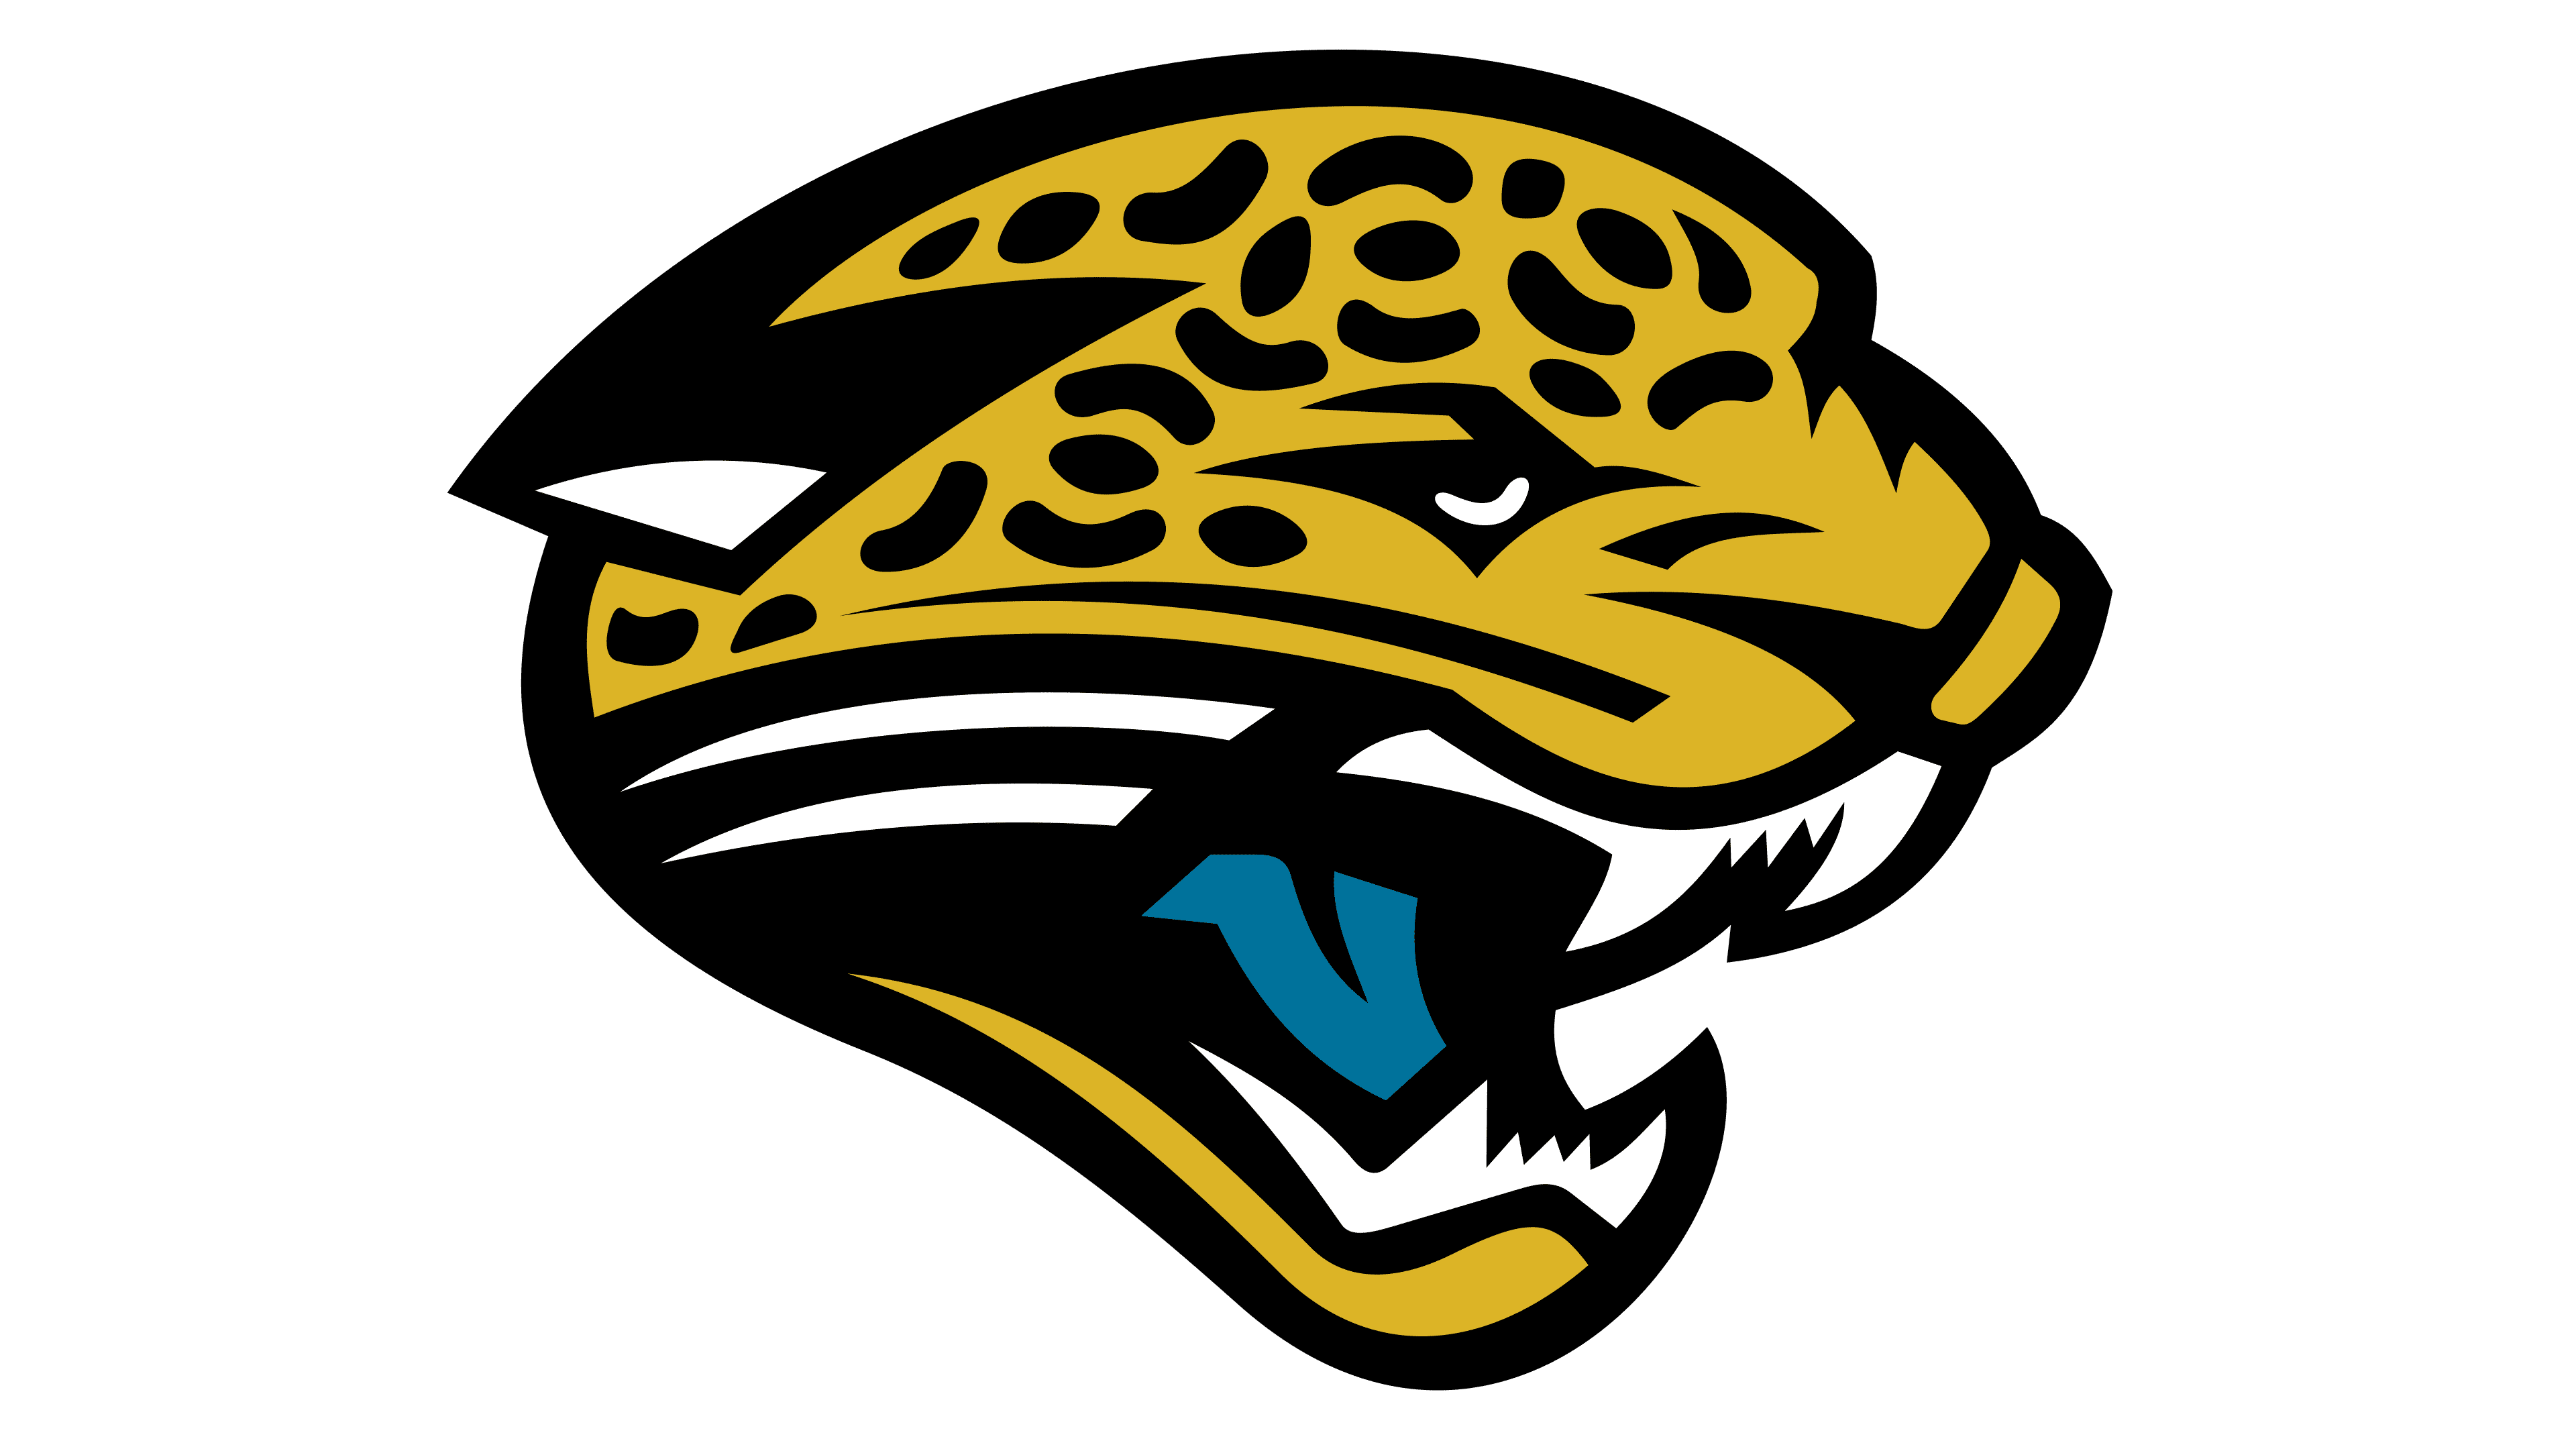 Jacksonville Jaguars Logo History The Most Famous Brands And Company Logos In The World